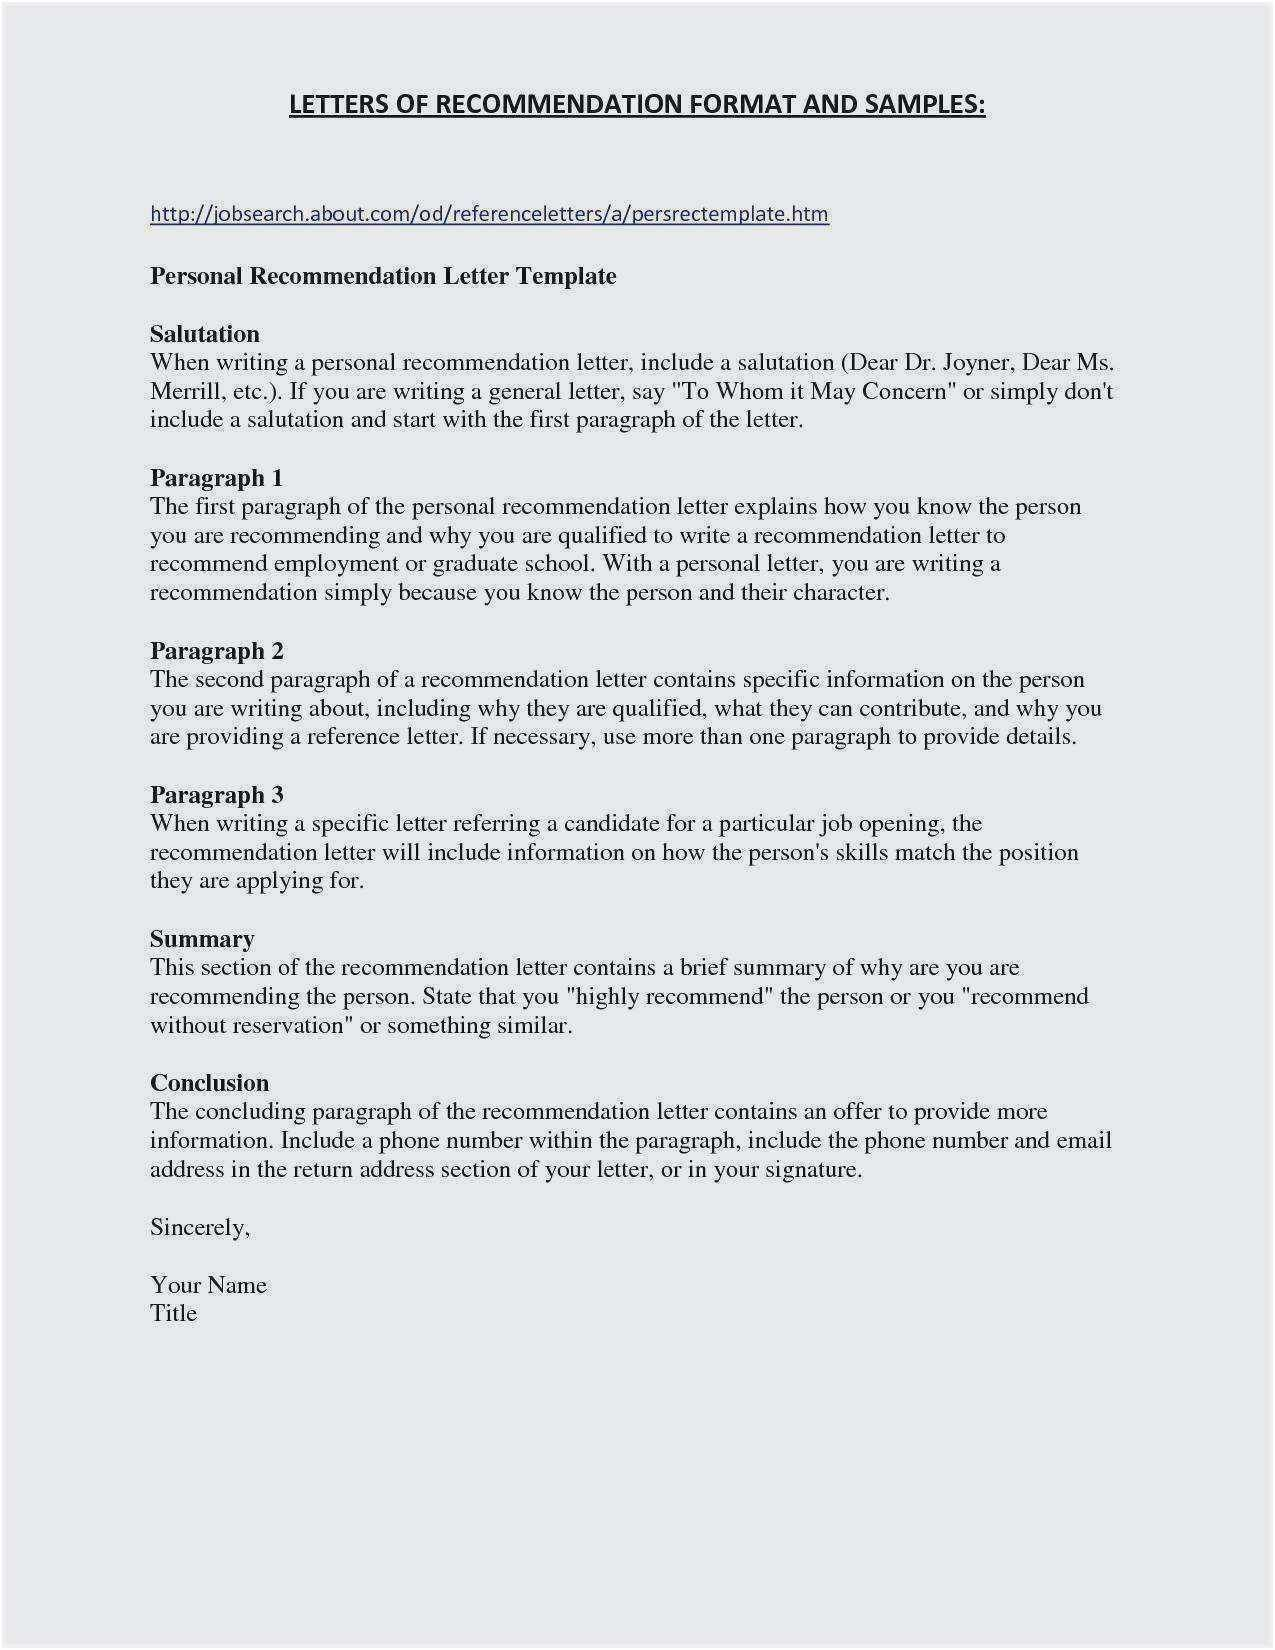 Personal Business Profile Template In